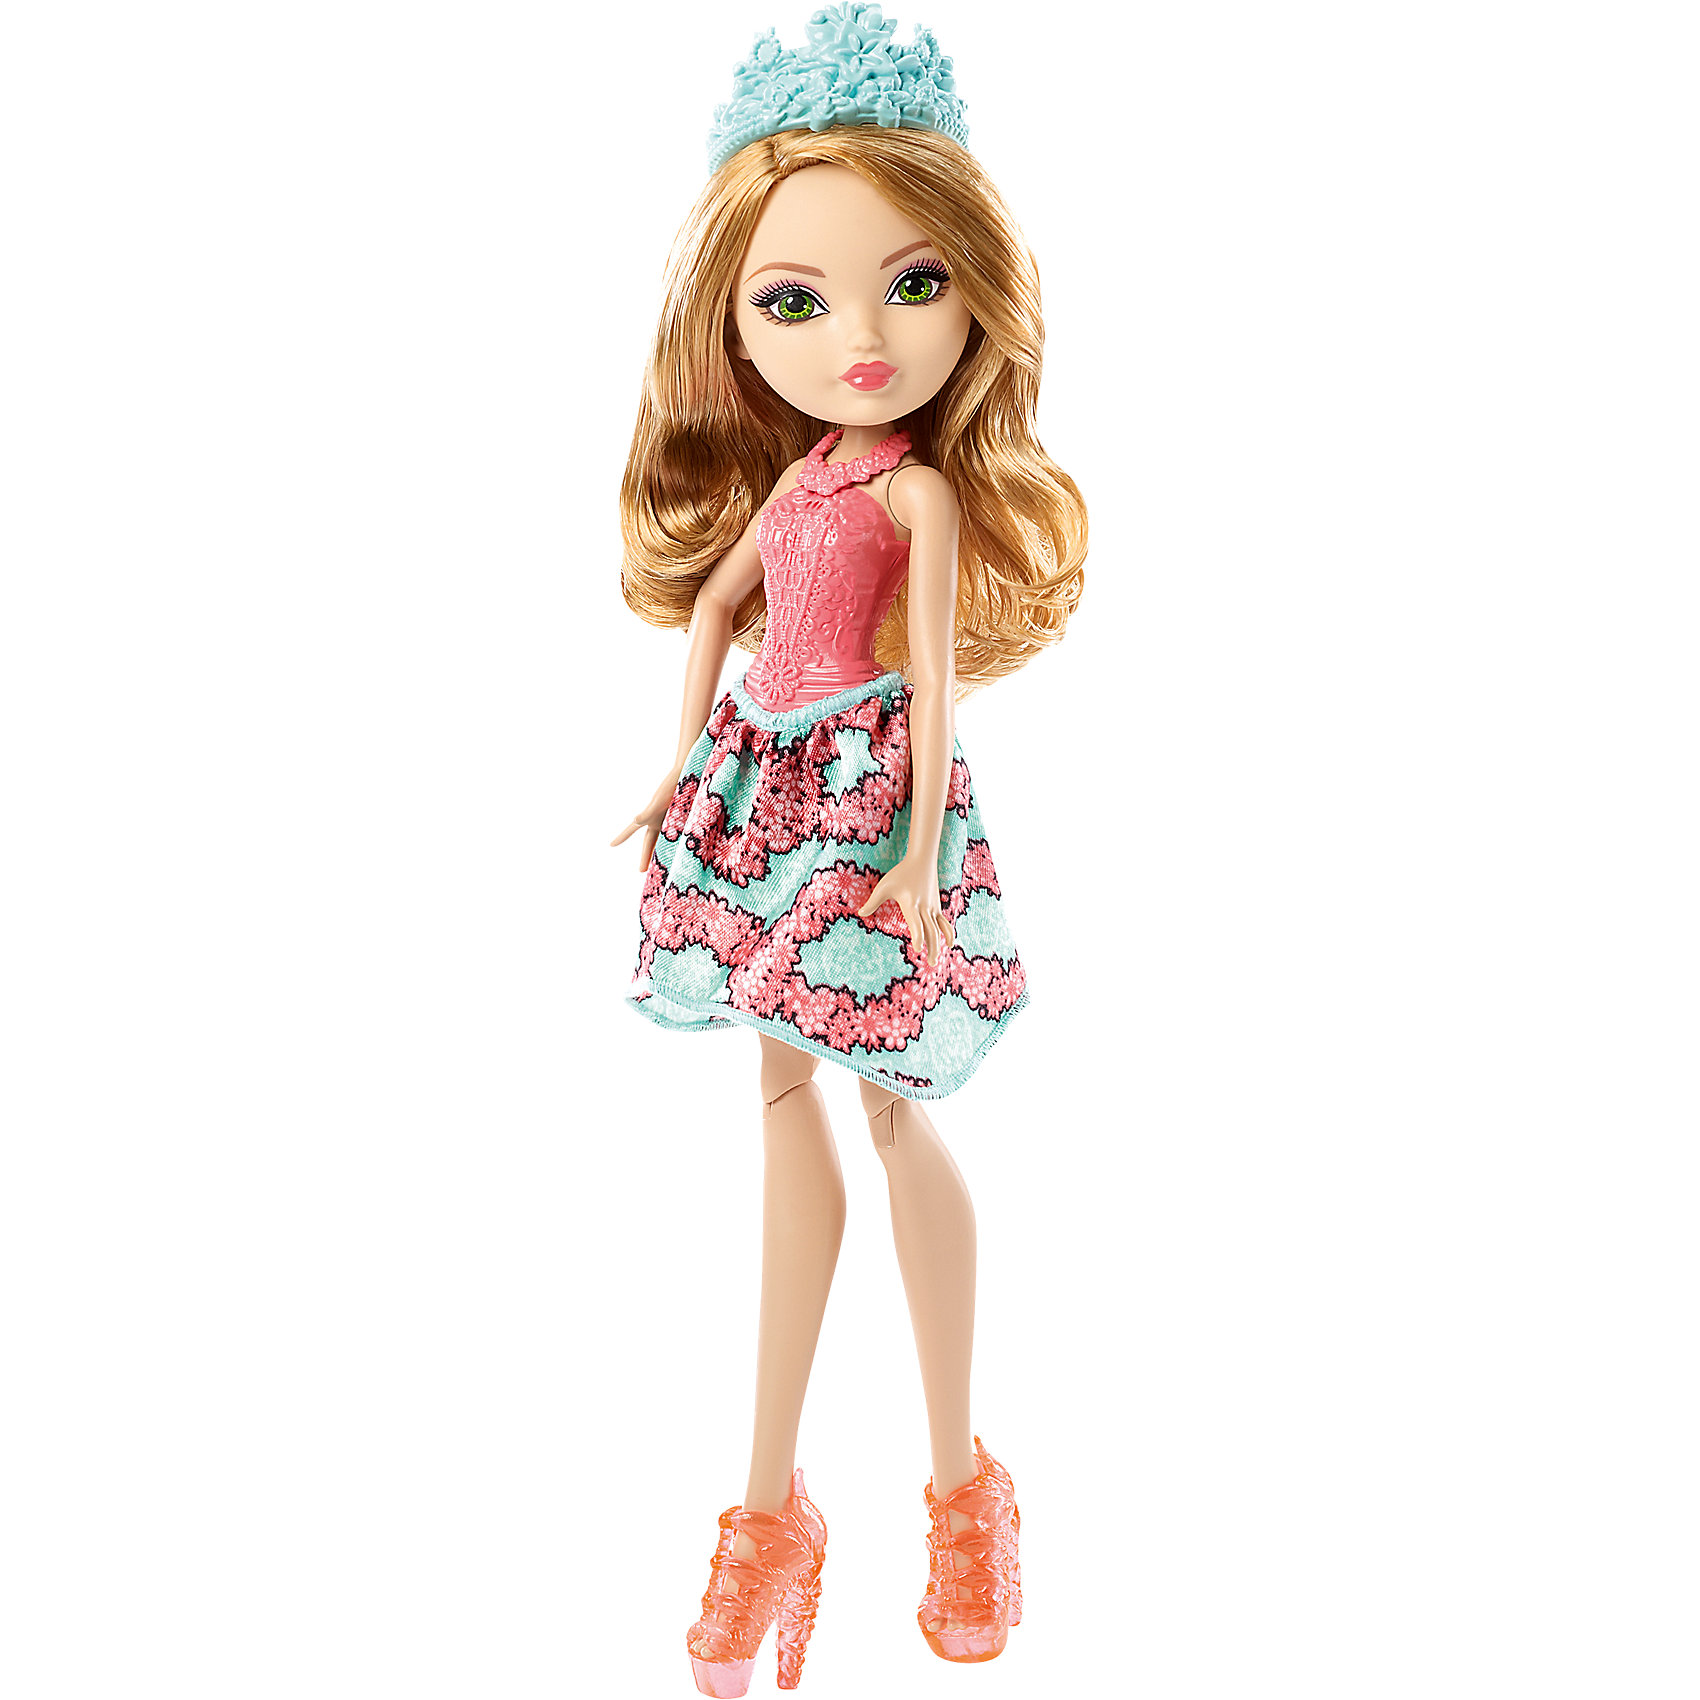 Mattel Кукла Эшлин Элла,  Ever After High mattel ever after high dvh81 куклы лучницы банни бланк